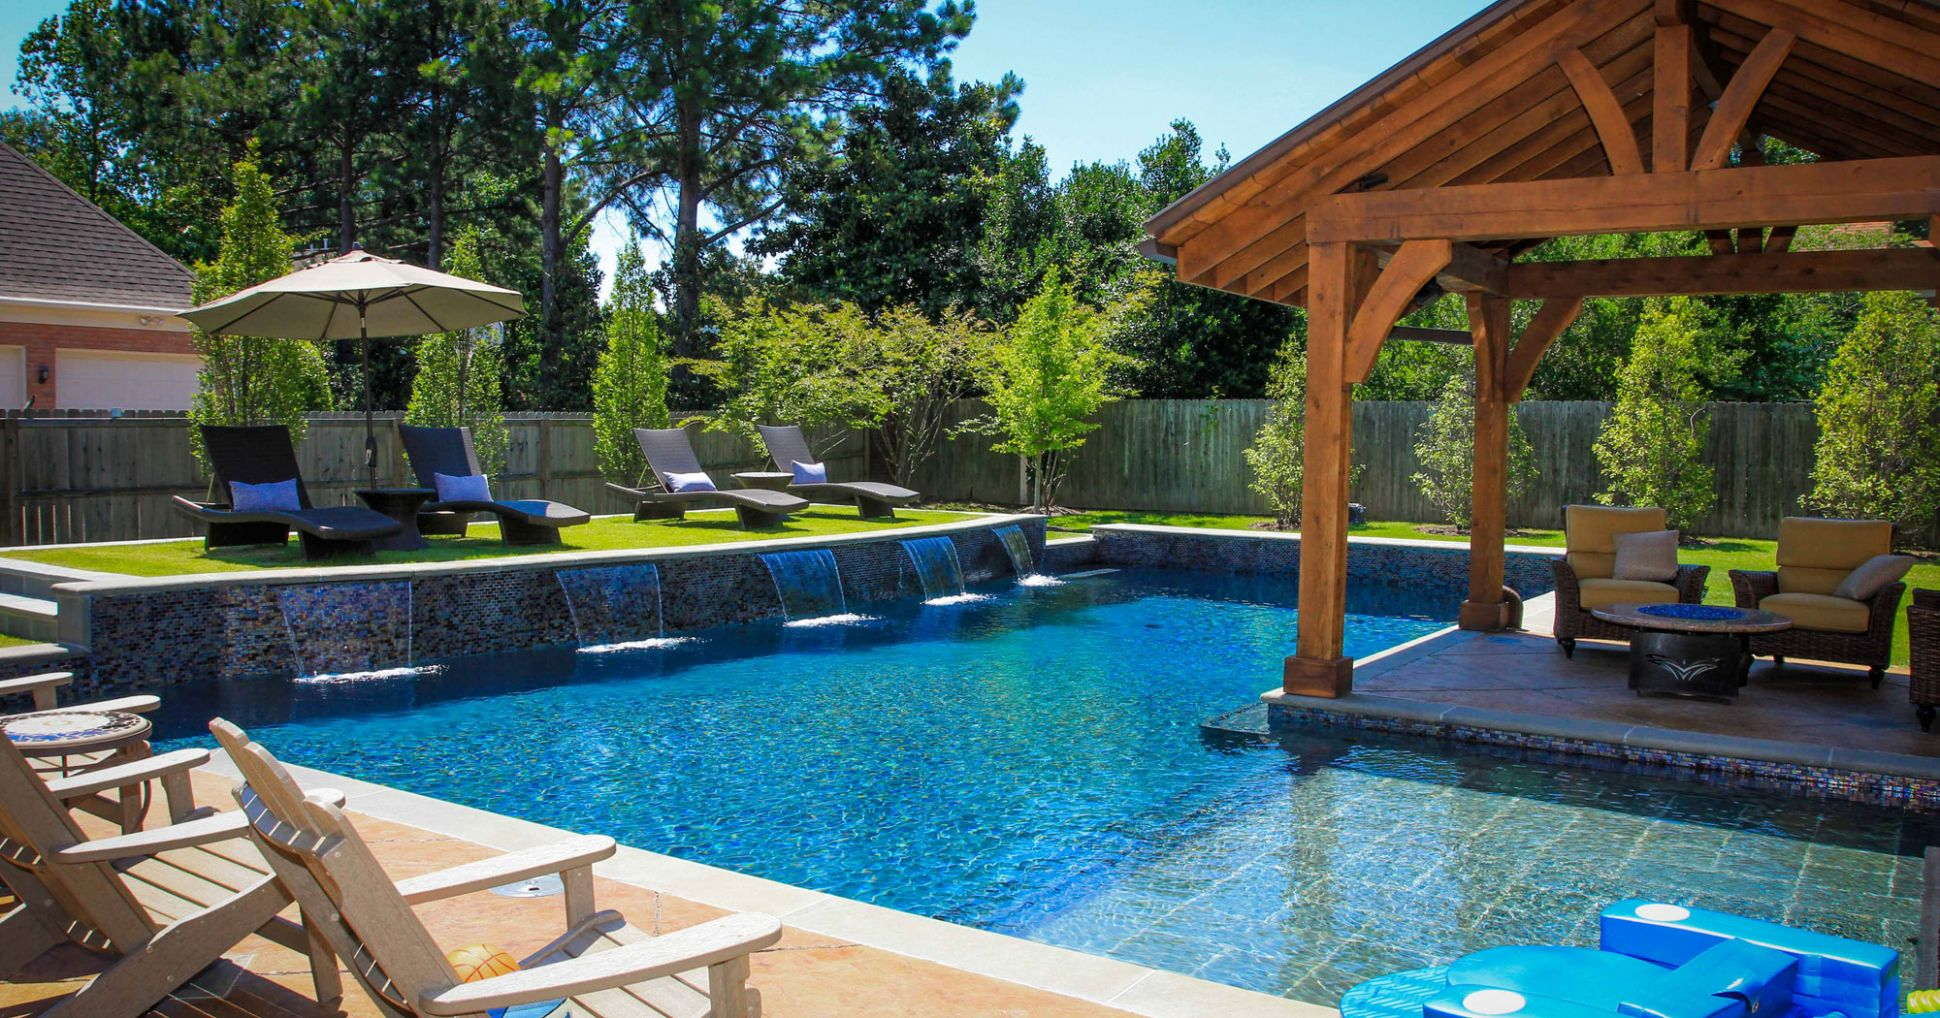 8 Backyard Pool Ideas for the Wealthy Homeowner